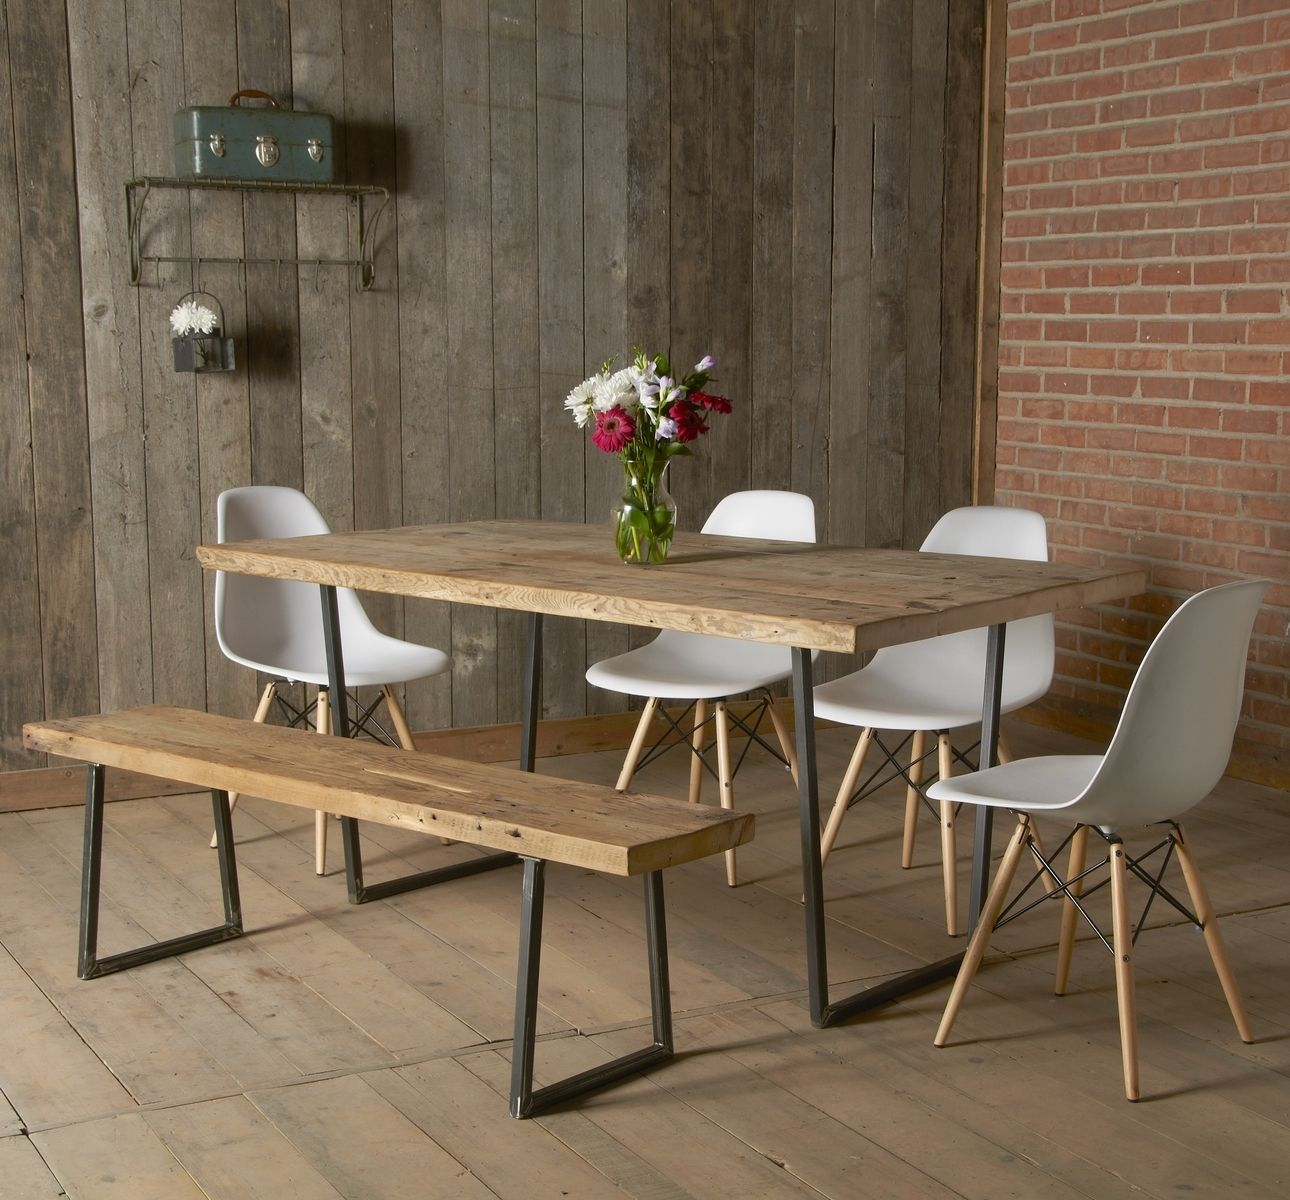 Vintage Dining Table – Coloring Interior with Vintage ...